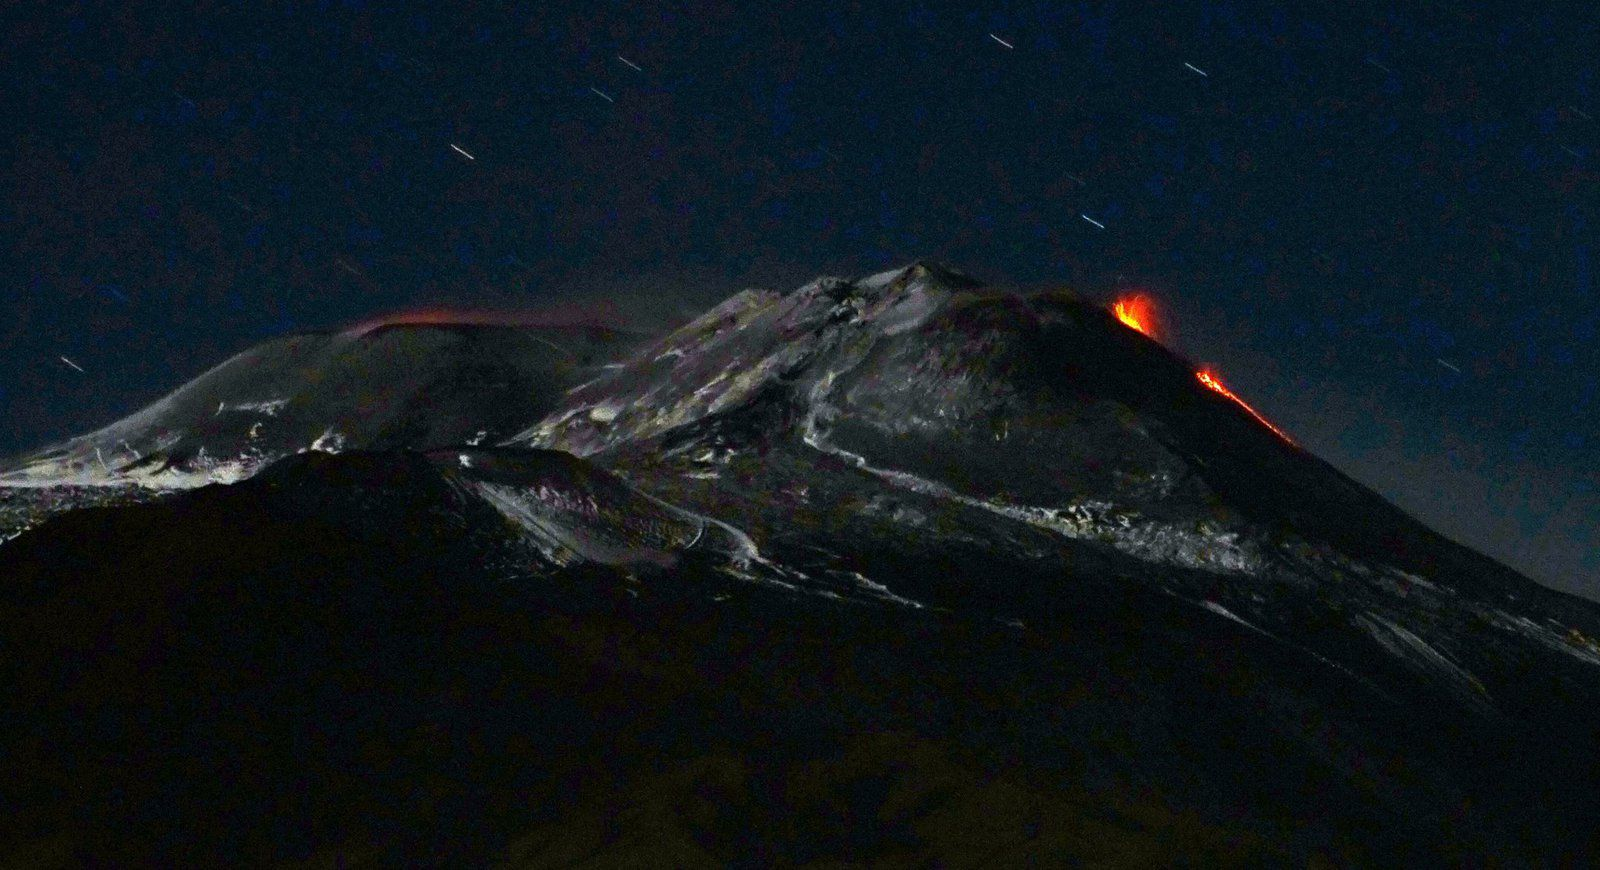 Etna - 26.11.2018 after midnight - On the left, the flow of the puttusiddu / NSEC and on the right, the incandescence at the level of the Bocca Nuova - picture Boris Behncke